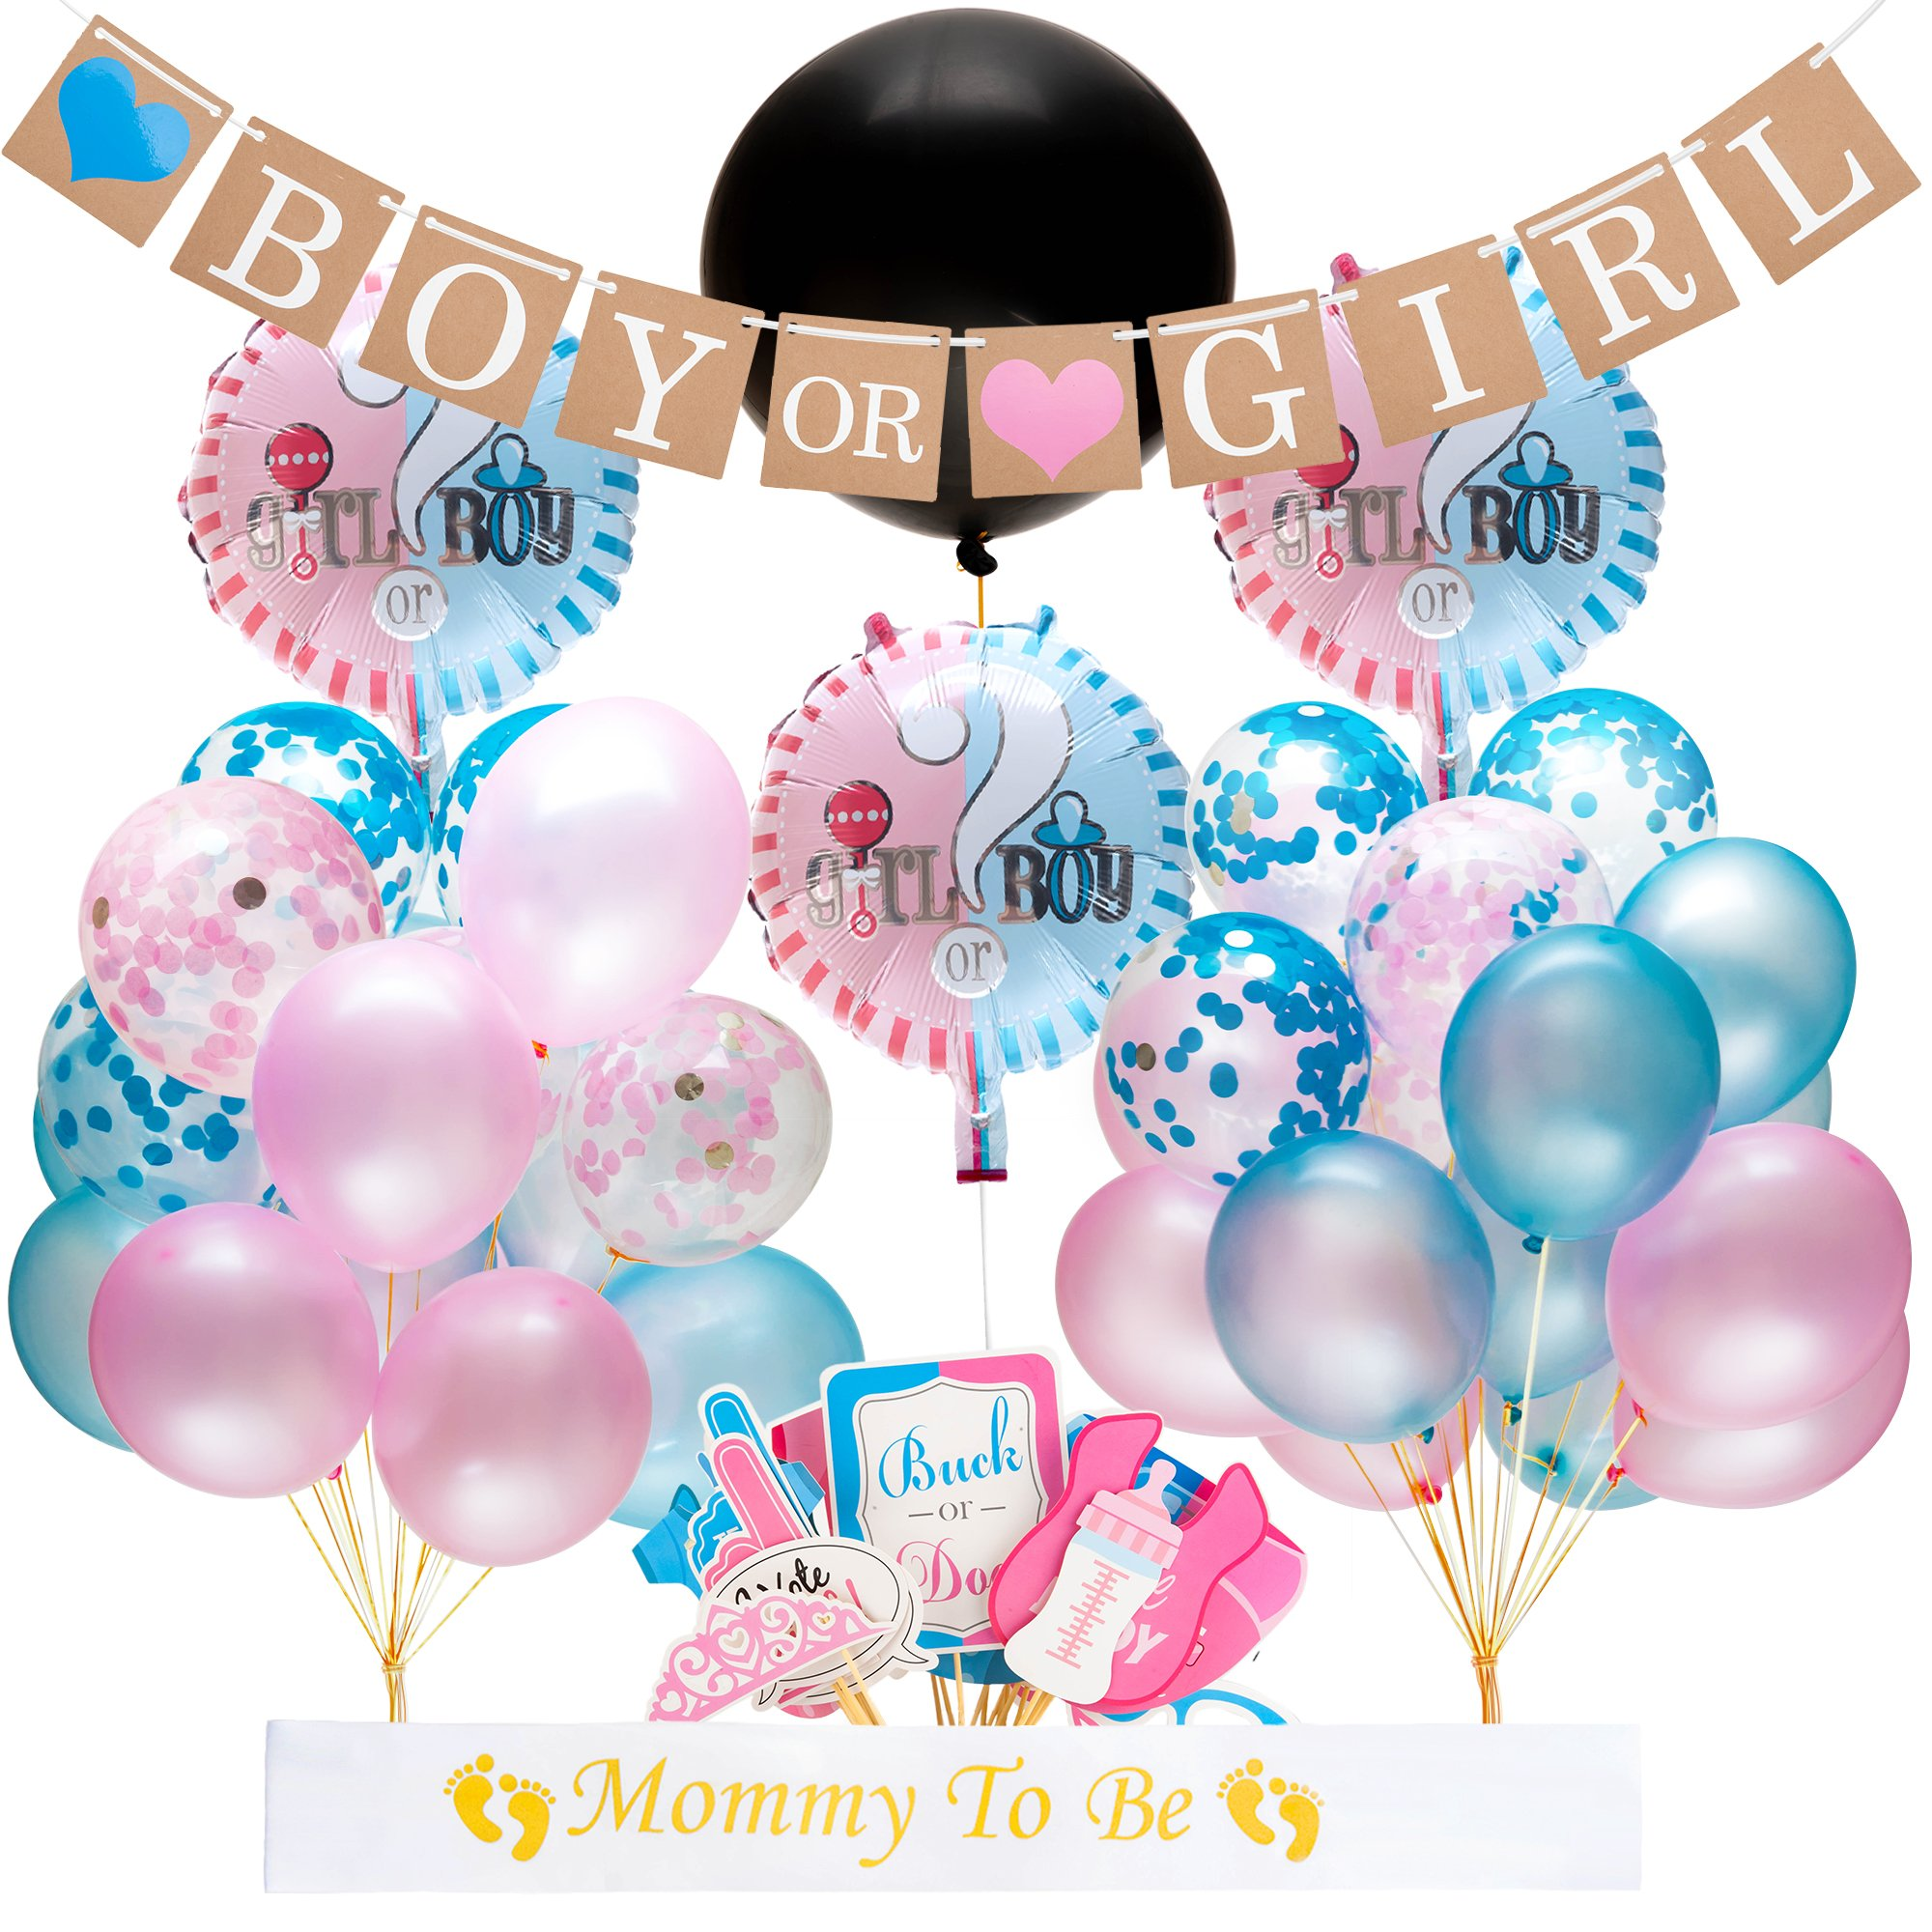 Gender Reveal Party Supplies and Baby Shower Boy or Girl Kit (64 Pieces) - Including 36'' Reveal Balloon, Confetti Balloons, Banner, Photo Props and More - All You Need to Celebrate Your Little One